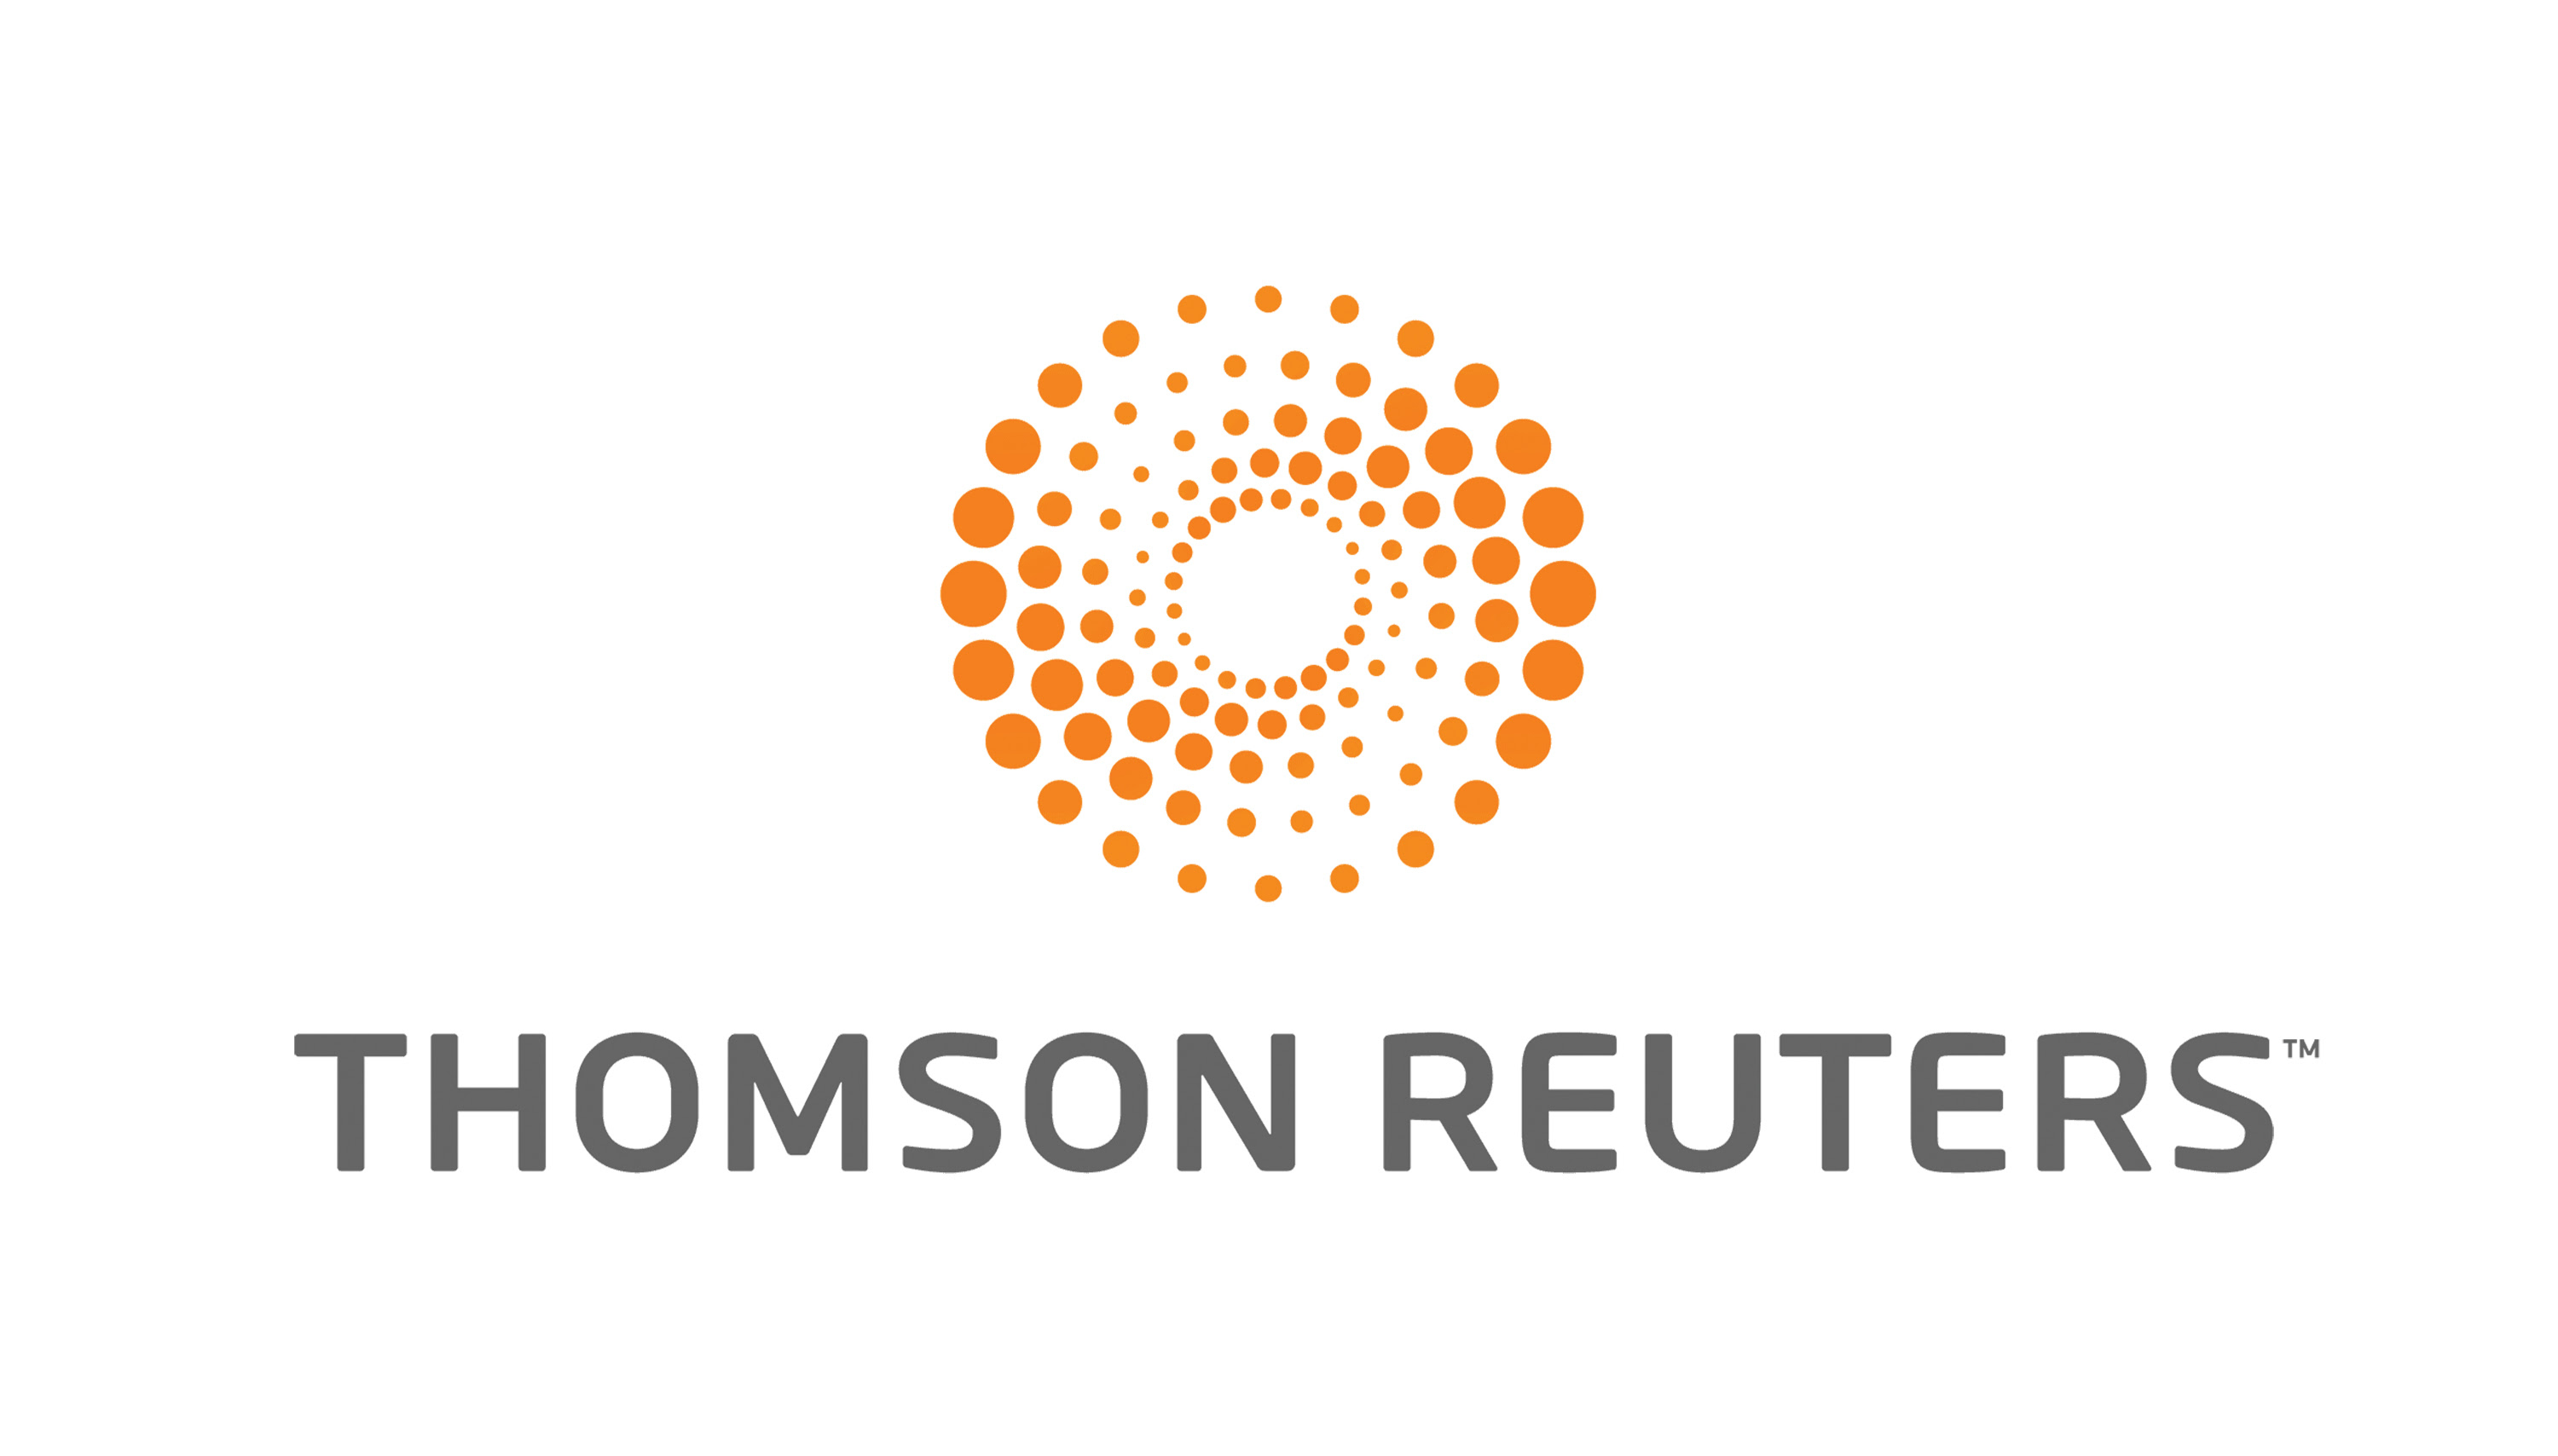 Regional Business Lead - West at Thomson Reuters